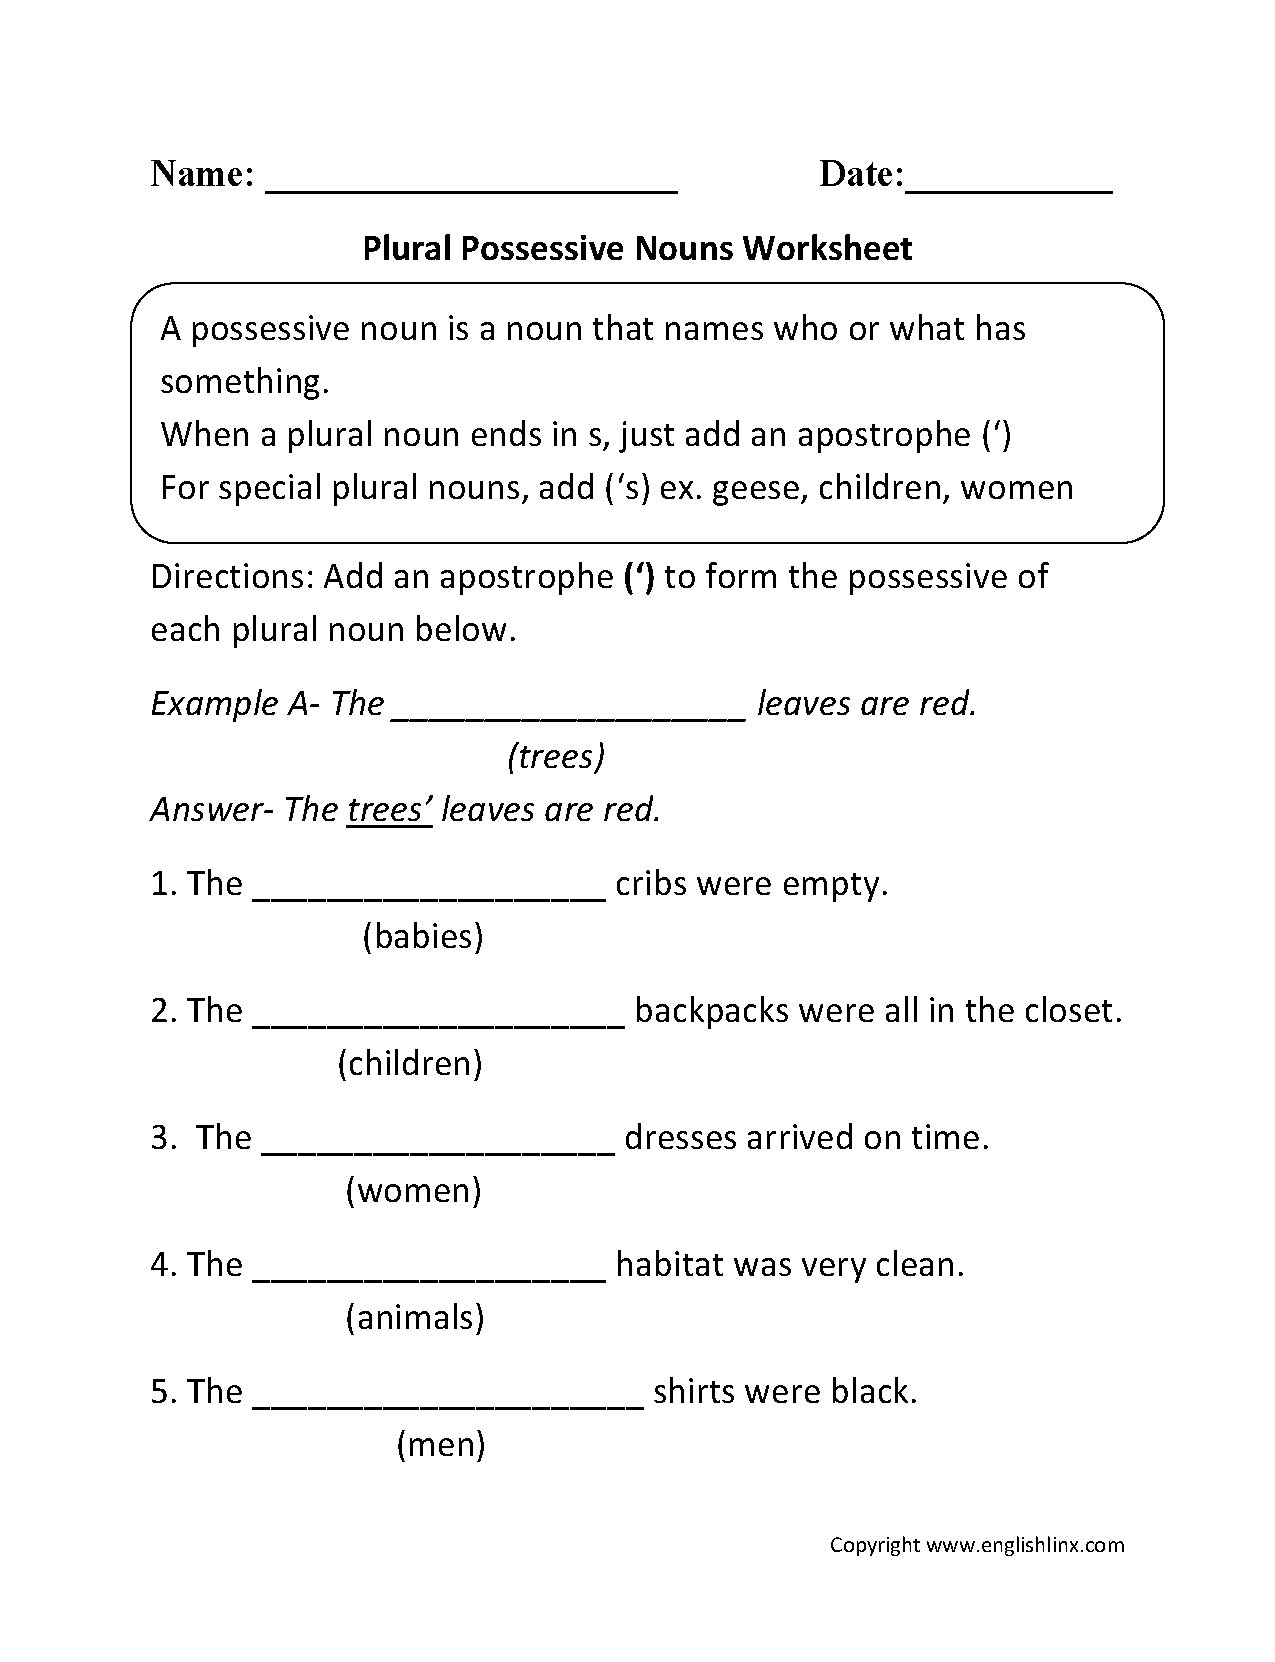 Aldiablosus  Gorgeous Nouns Worksheets  Possessive Nouns Worksheets With Likable Possessive Nouns Worksheets With Divine Phonics Worksheets For Adults Also D Nealian Cursive Handwriting Worksheets In Addition The Five Themes Of Geography Worksheet And Physical Science Worksheets High School As Well As Percent Discount Worksheet Additionally Alphabet Worksheets Kindergarten From Englishlinxcom With Aldiablosus  Likable Nouns Worksheets  Possessive Nouns Worksheets With Divine Possessive Nouns Worksheets And Gorgeous Phonics Worksheets For Adults Also D Nealian Cursive Handwriting Worksheets In Addition The Five Themes Of Geography Worksheet From Englishlinxcom